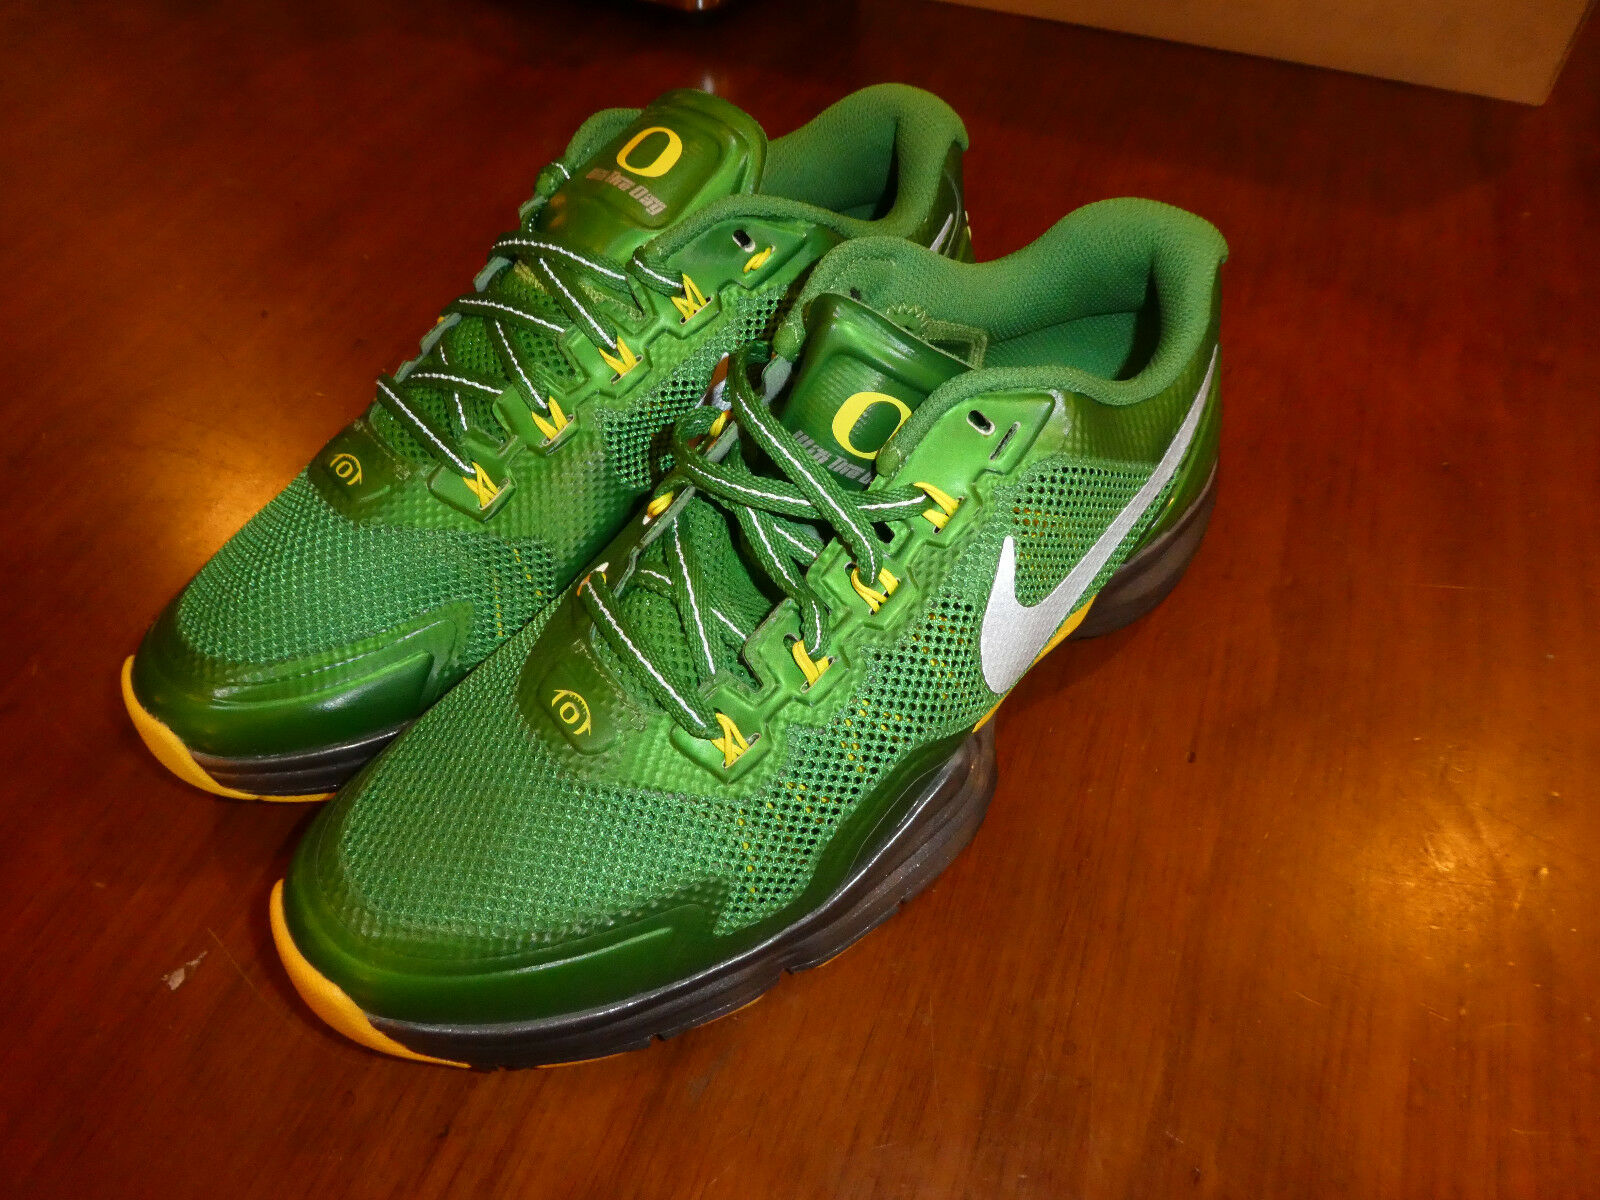 Nike Lunar TR1 Oregon 574266 307 shoes new sneakers green